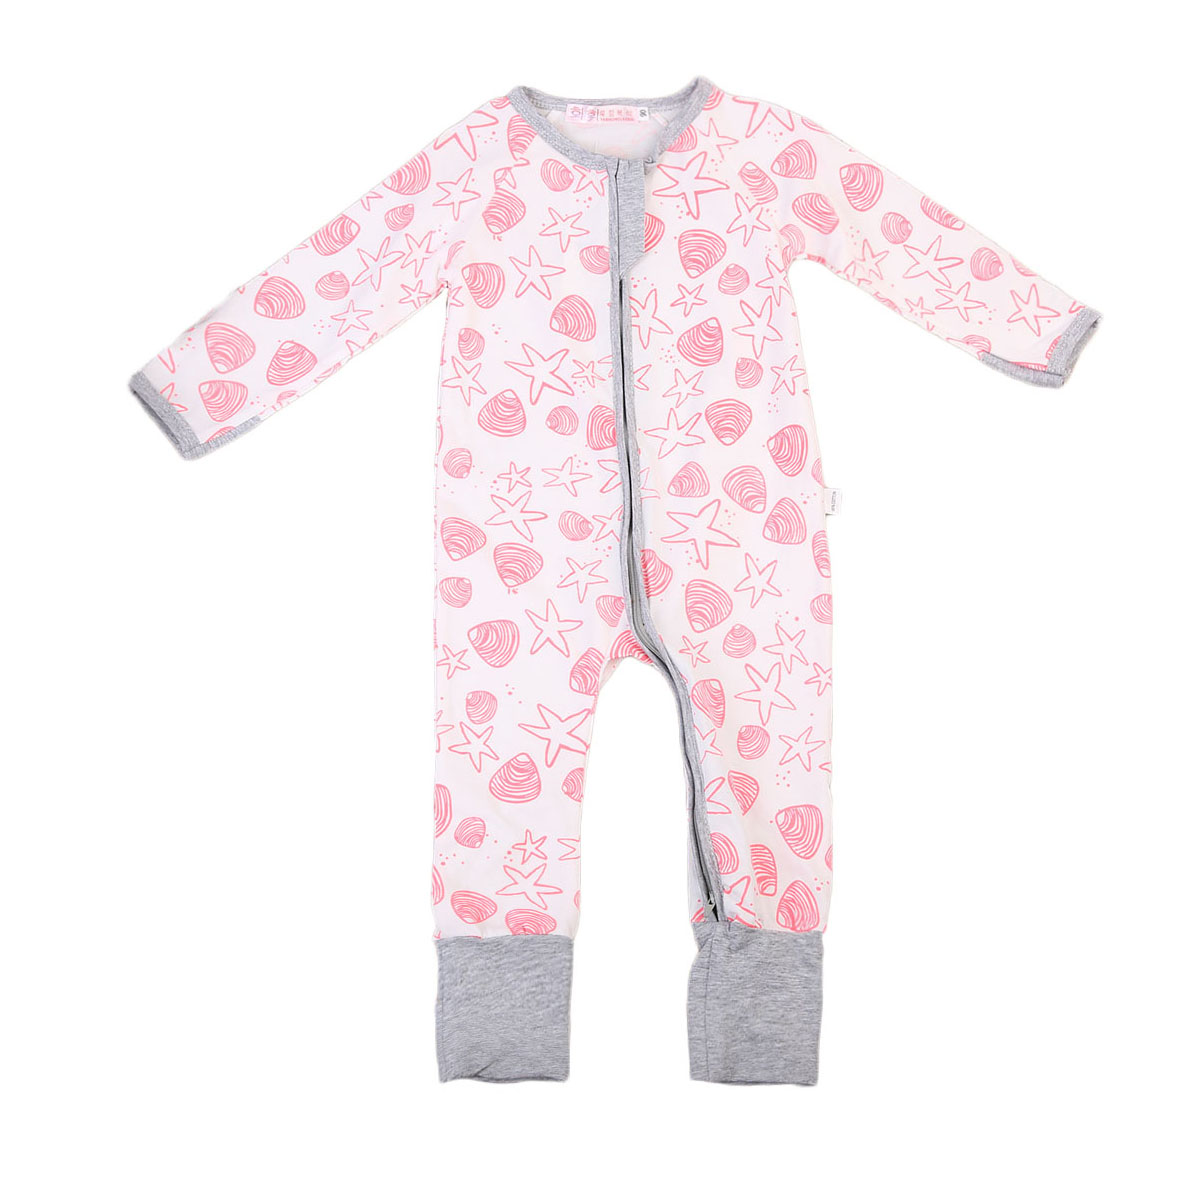 Newborn Kids Baby Girls Cotton Romper Long Sleeve Cotton Cute Zipper Flower Jumpsuit Outfits Warm Rompers Clothes Baby Girl newborn infant baby girl cotton clothes romper long sleeve plaid zipper cute jumpsuit rompers clothing outfits